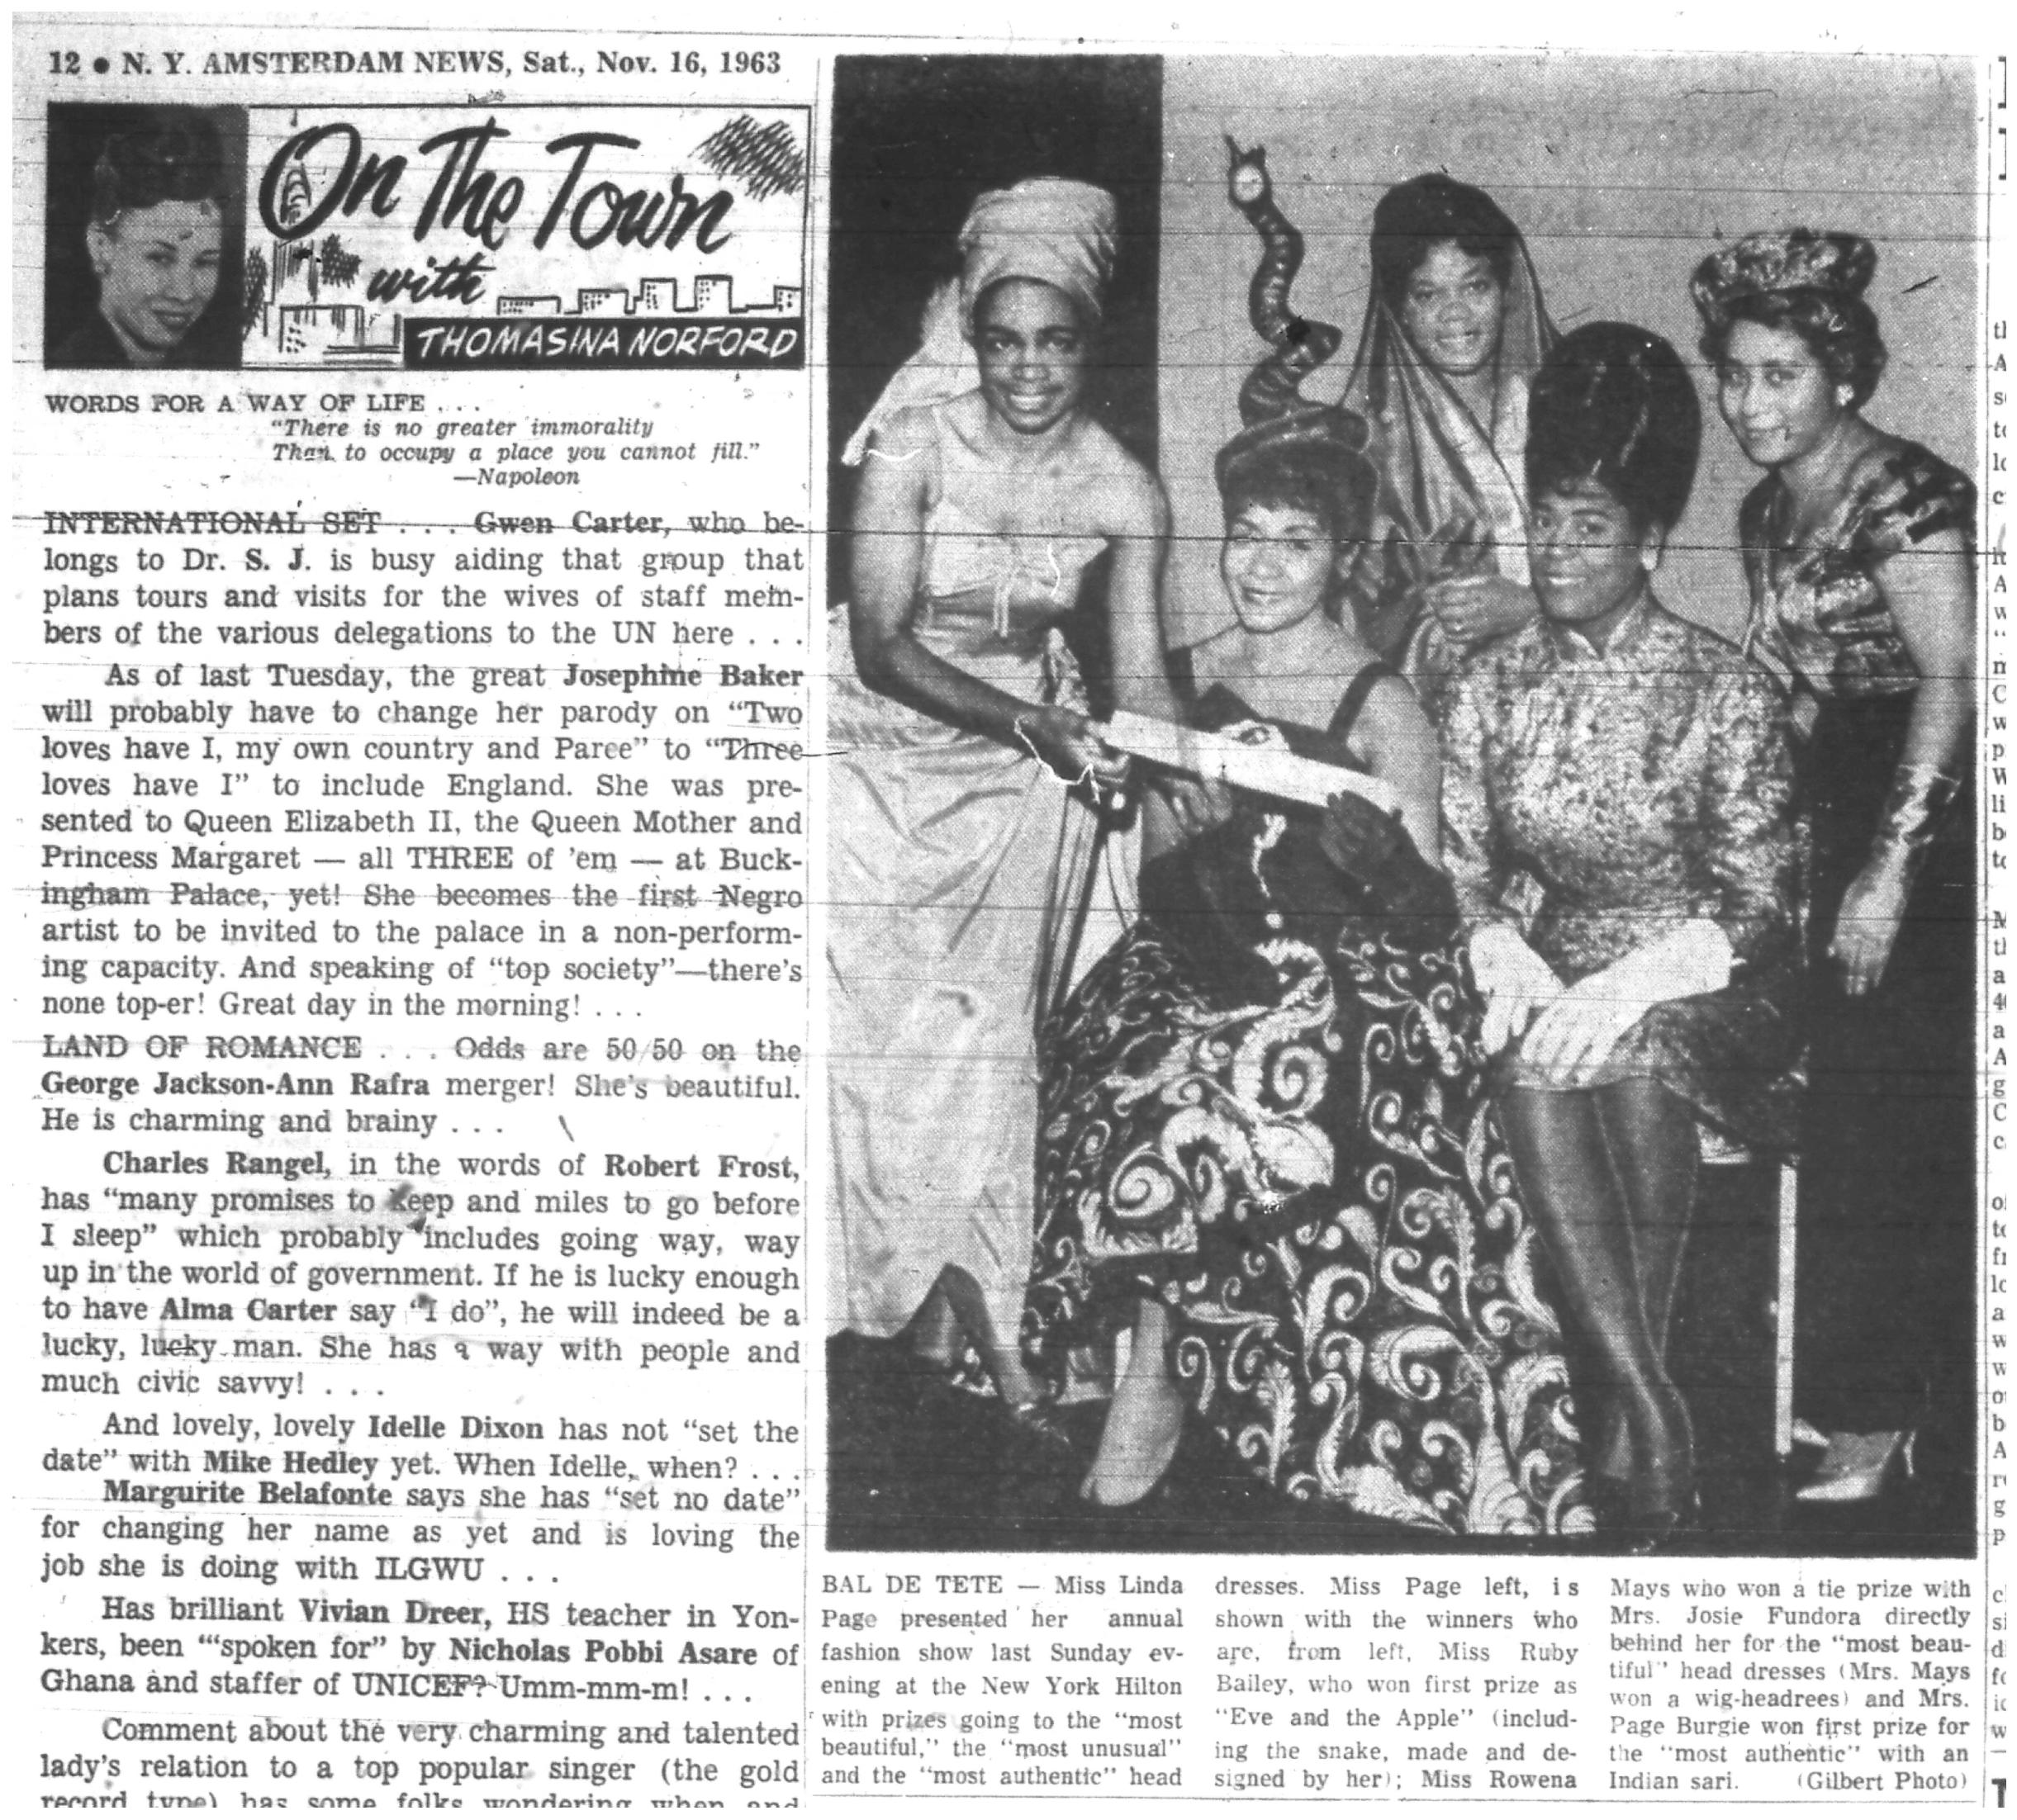 """Ruby Bailey in her """"Eve and the Apple"""" ensemble at the Bal de Tete, New York Amsterdam News  (November 16, 1963)."""